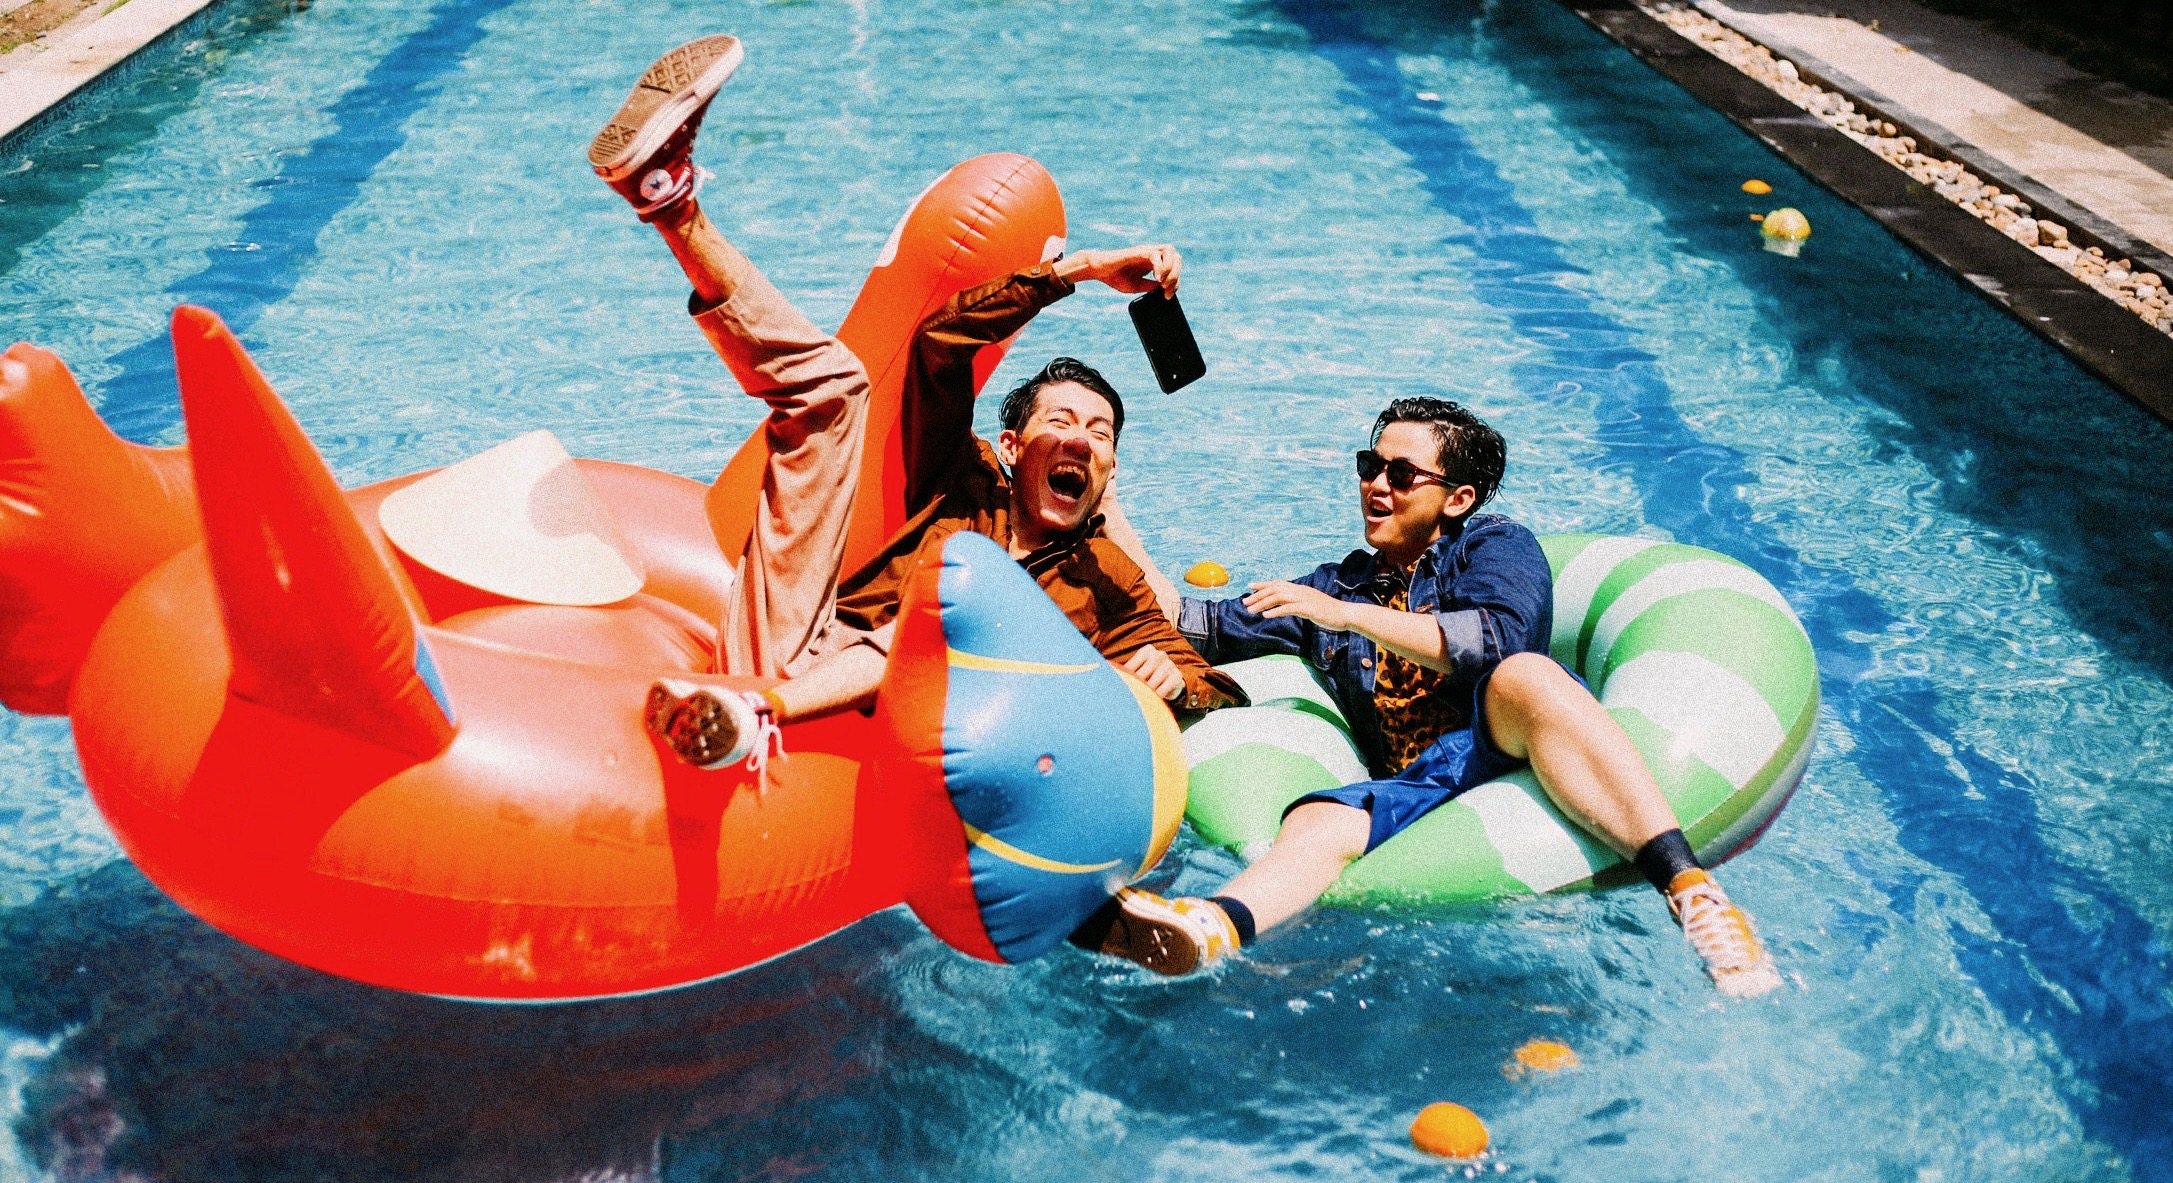 two guys on inflatable pool toys